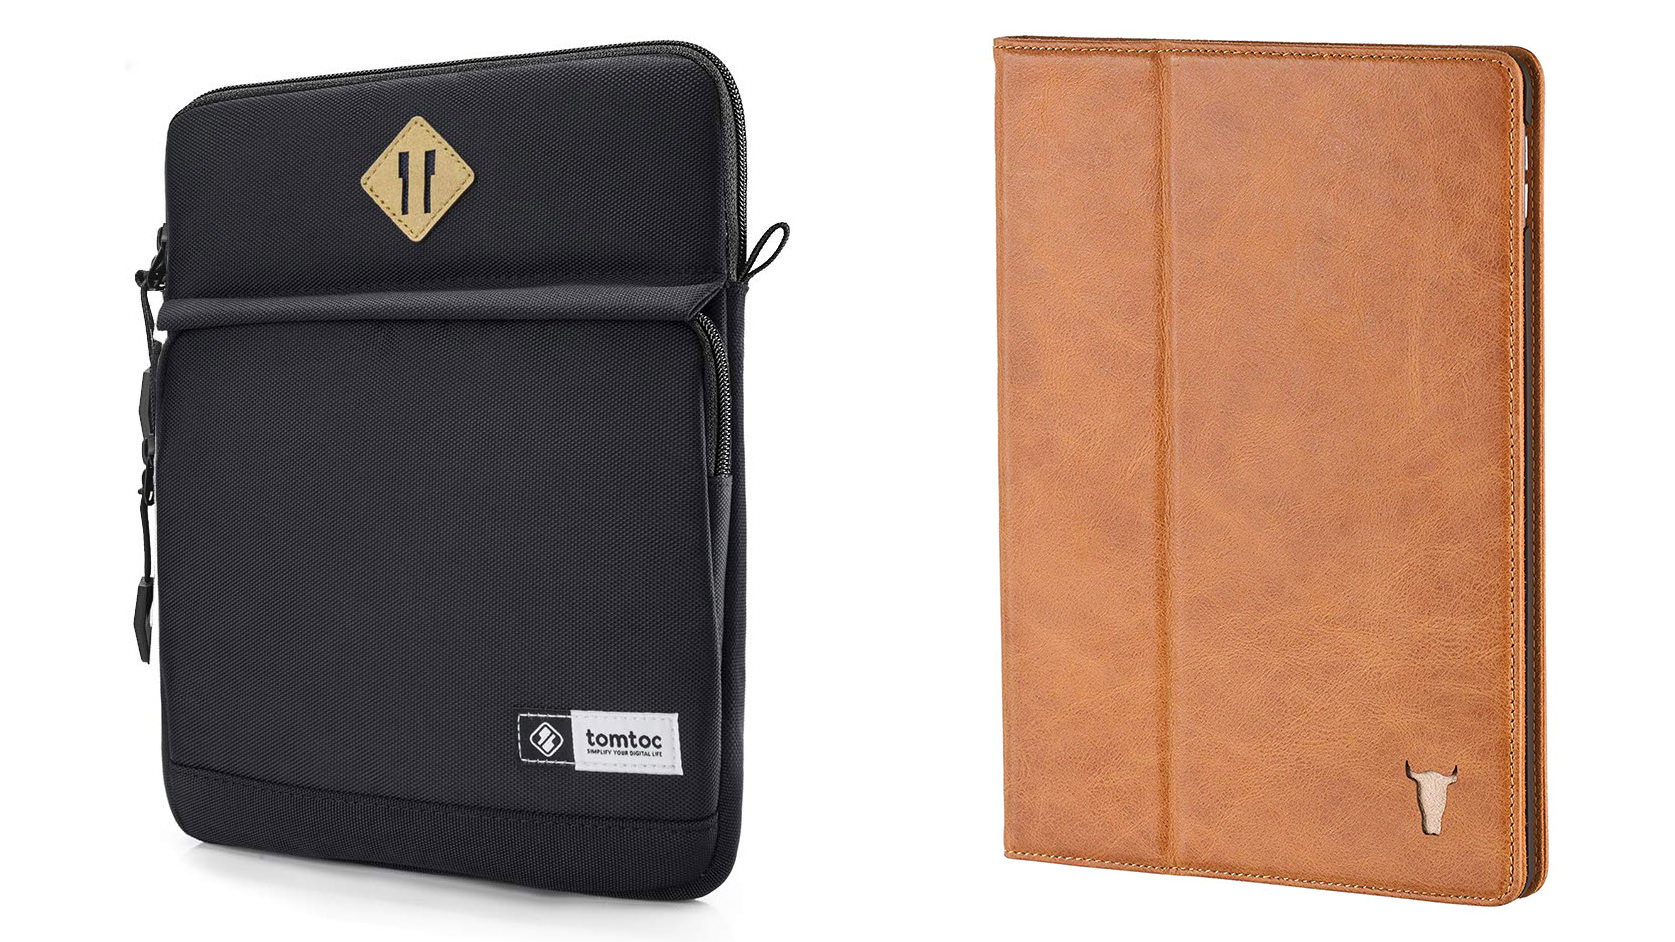 ab7b776f45 Best iPad Air 3 cases: Ideal cases for style, drop-proofing, practicality  and more | Expert Reviews